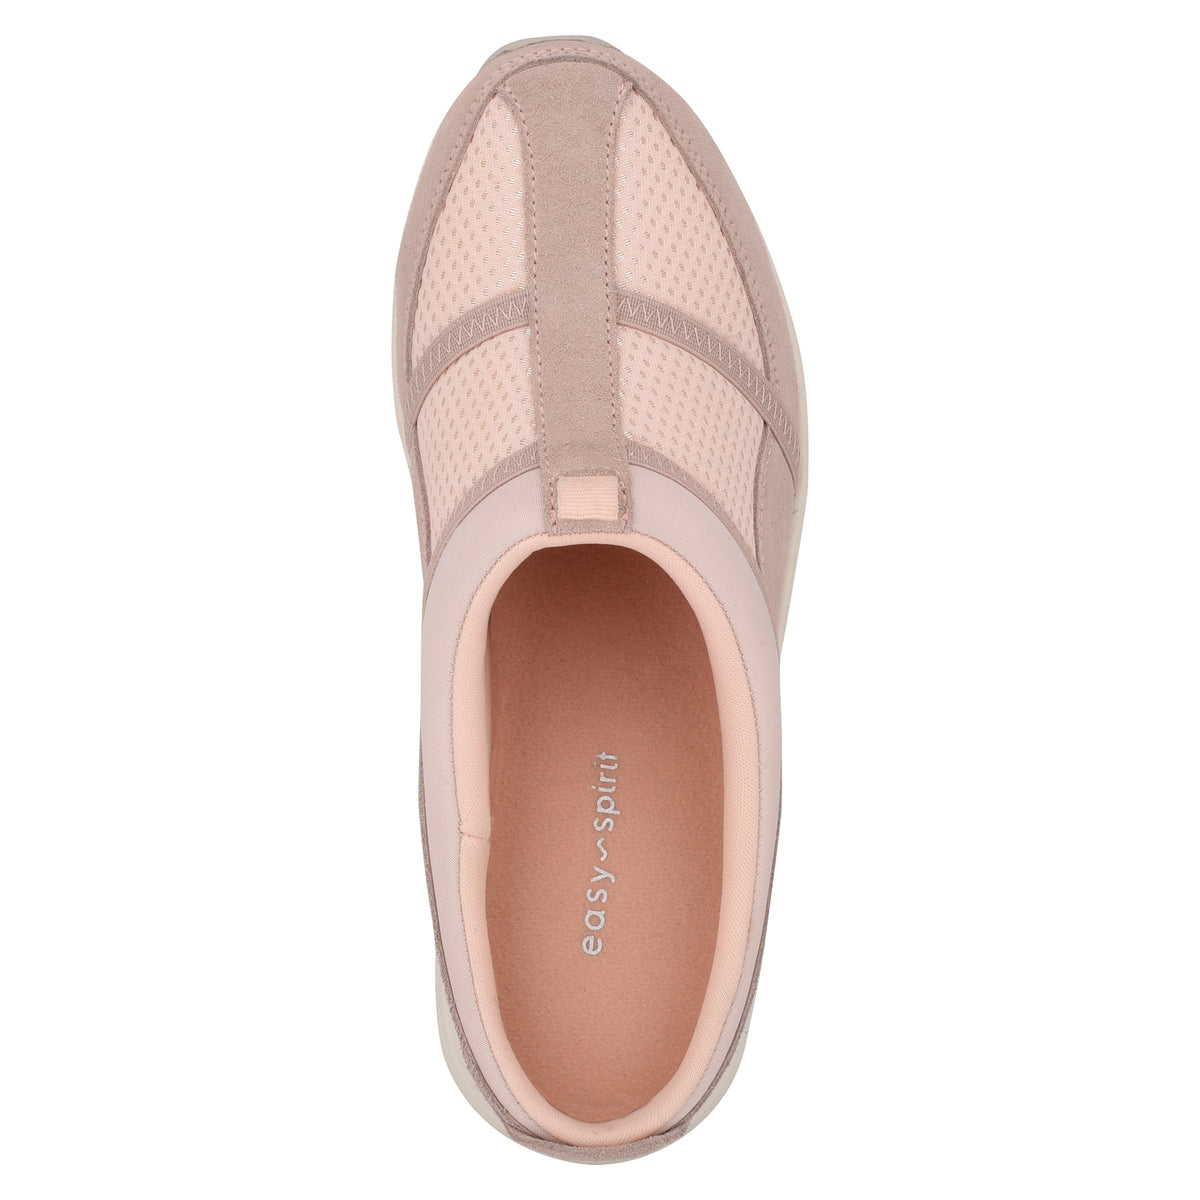 argyle-mesh-clogs-in-light-pink-suede